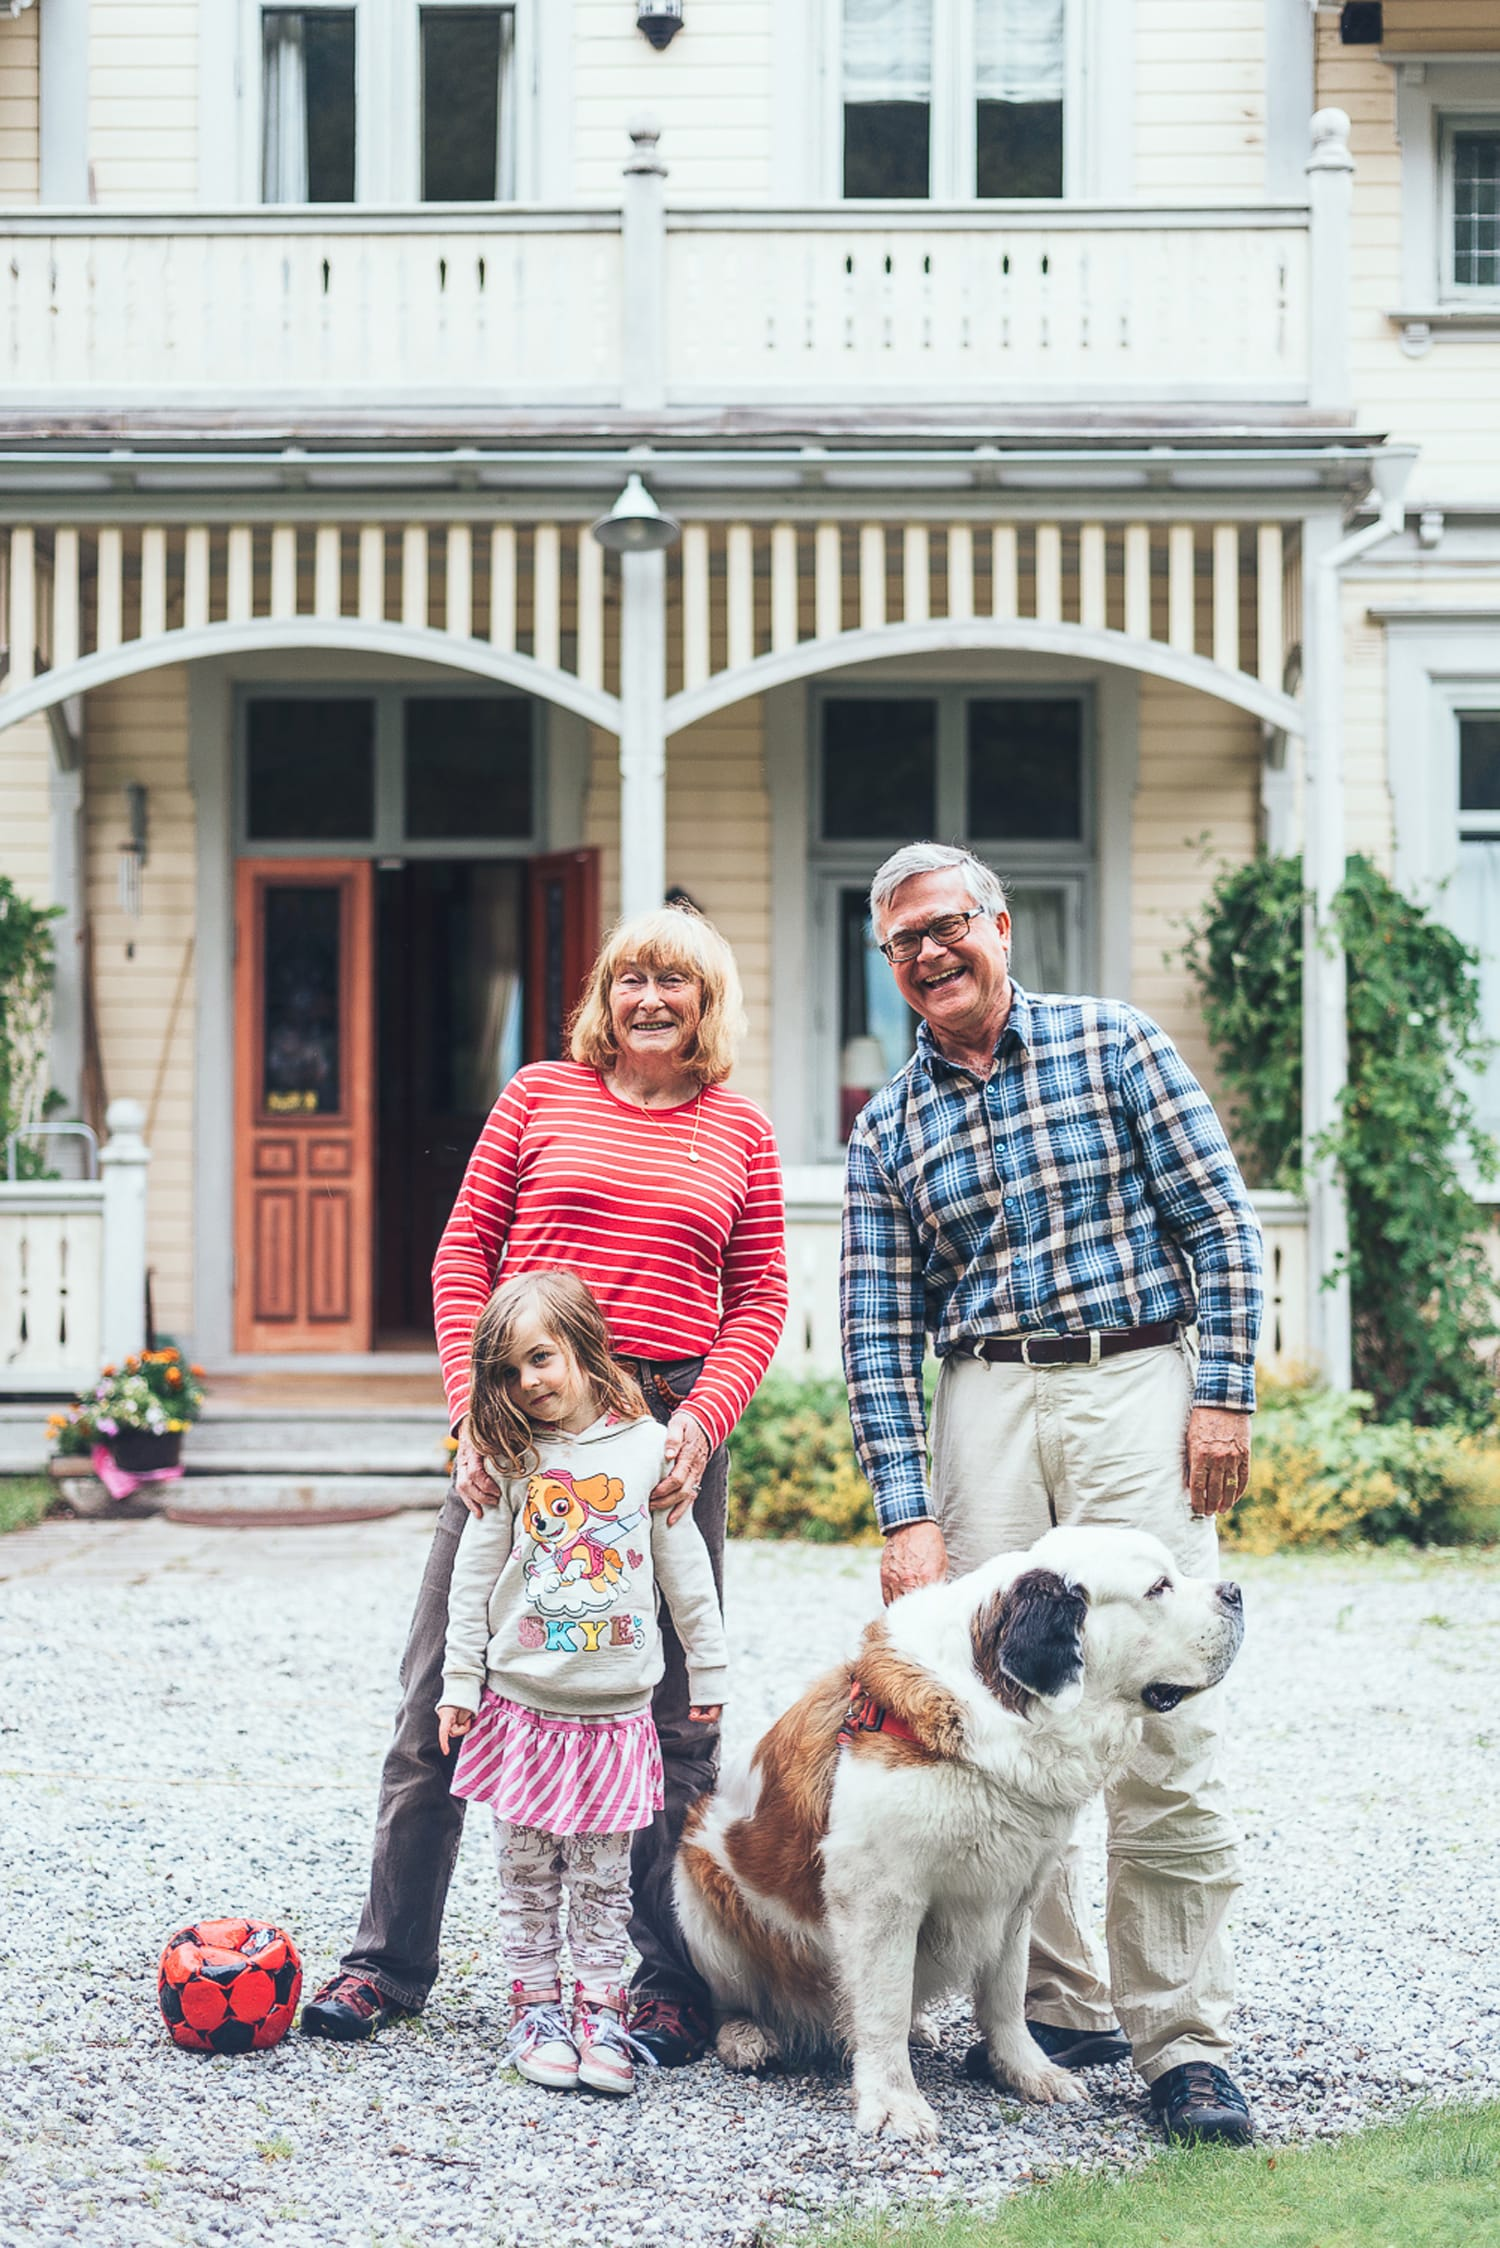 grandparents, grandchild and dog outside their house